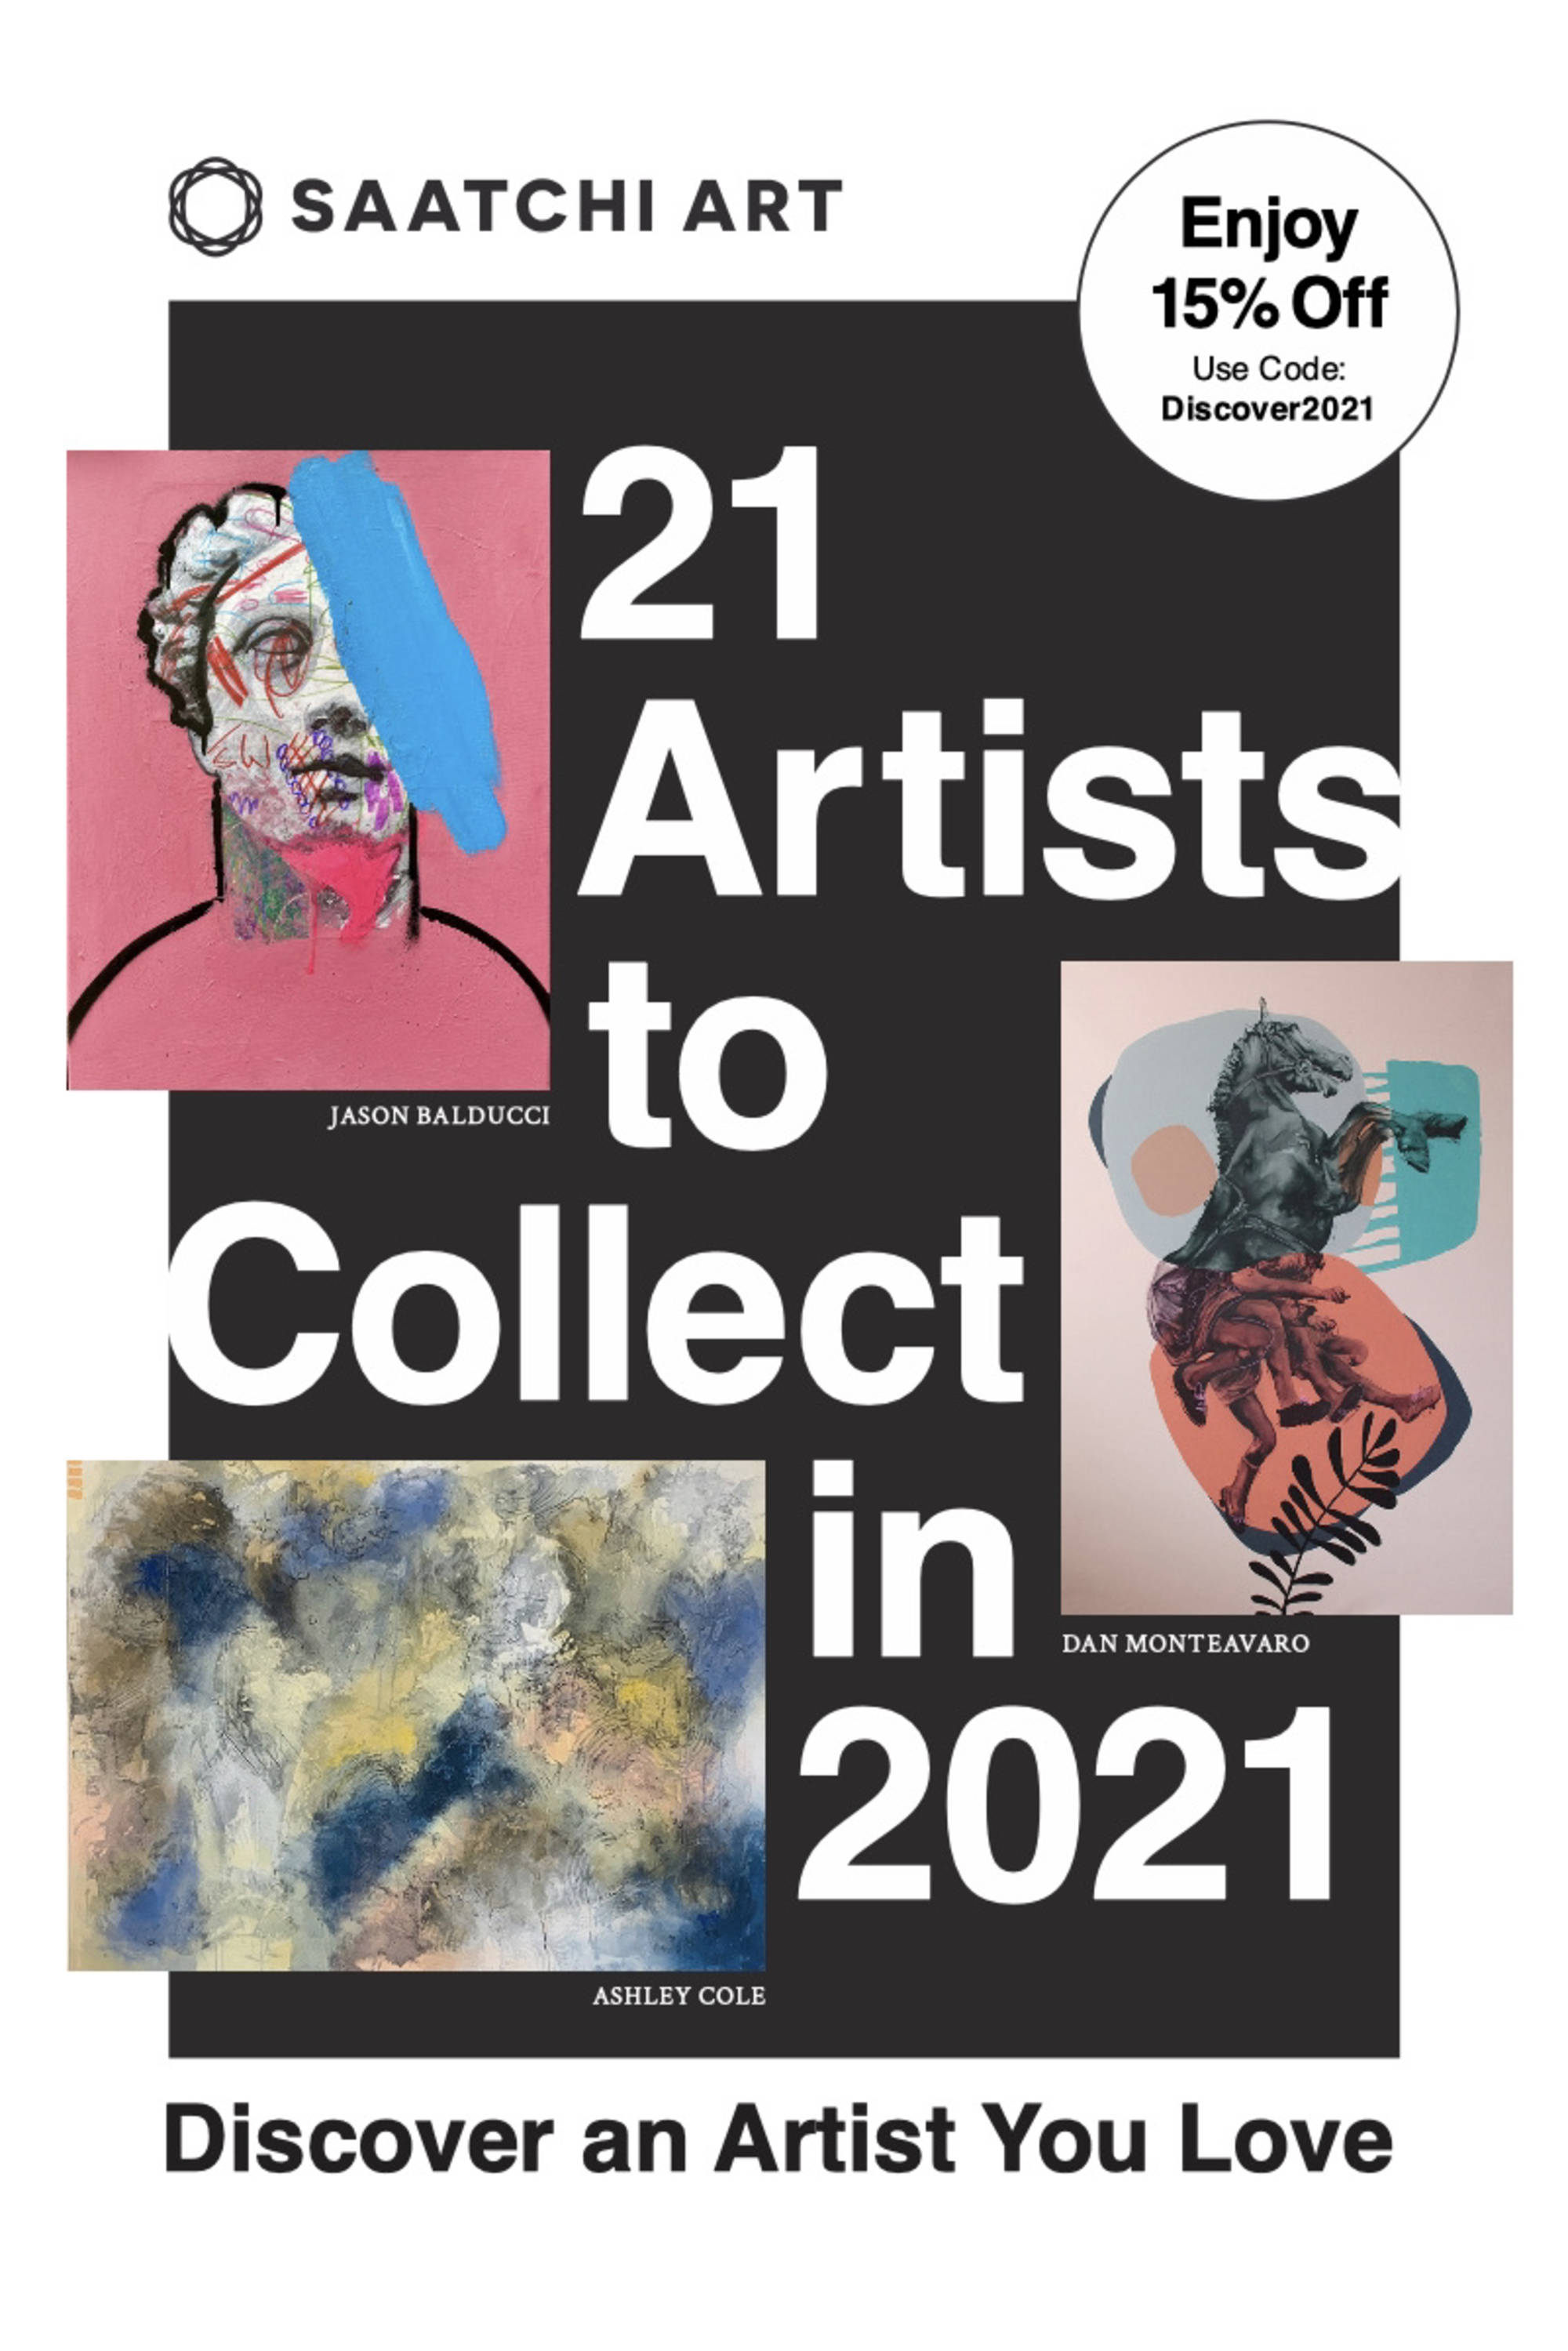 Saatchi Art: 21 Artists to Collect in 2021